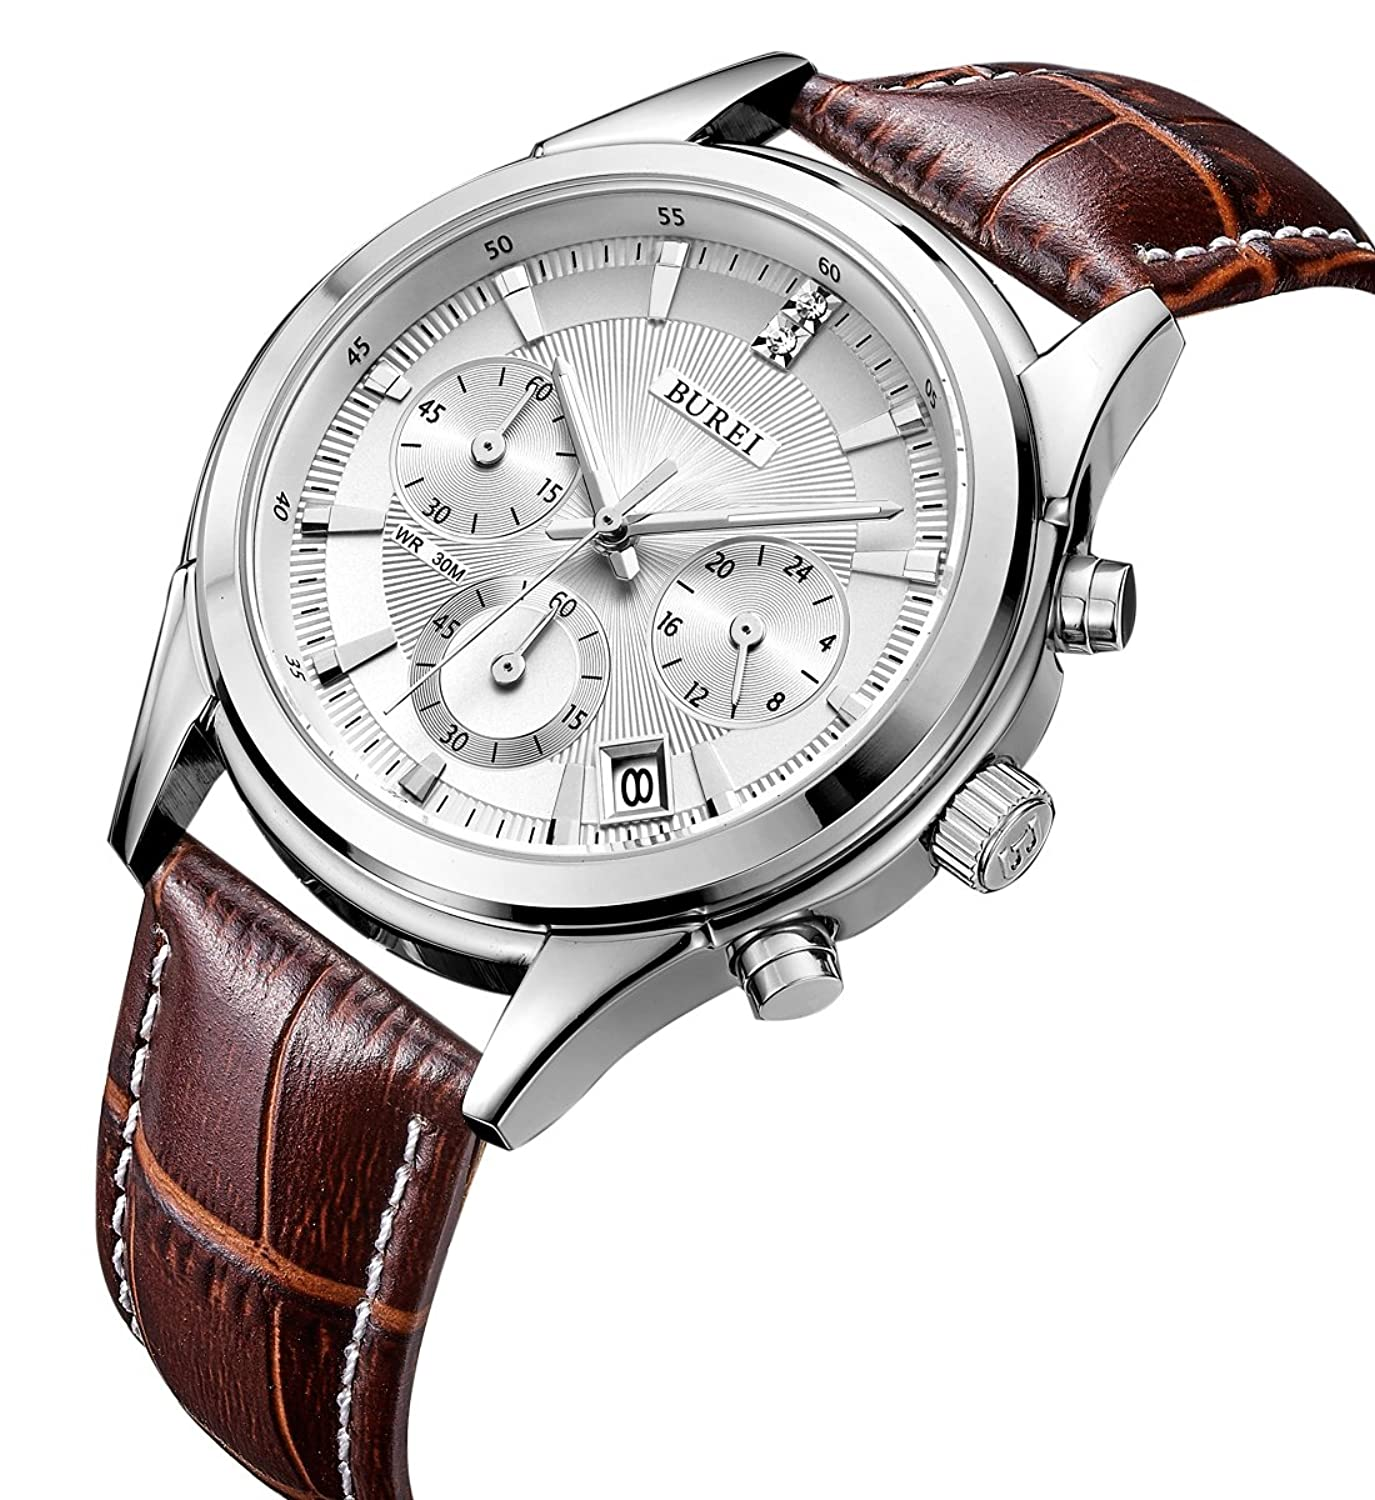 Top 10 Best Chronograph Watches For Men Under 200 For 2016